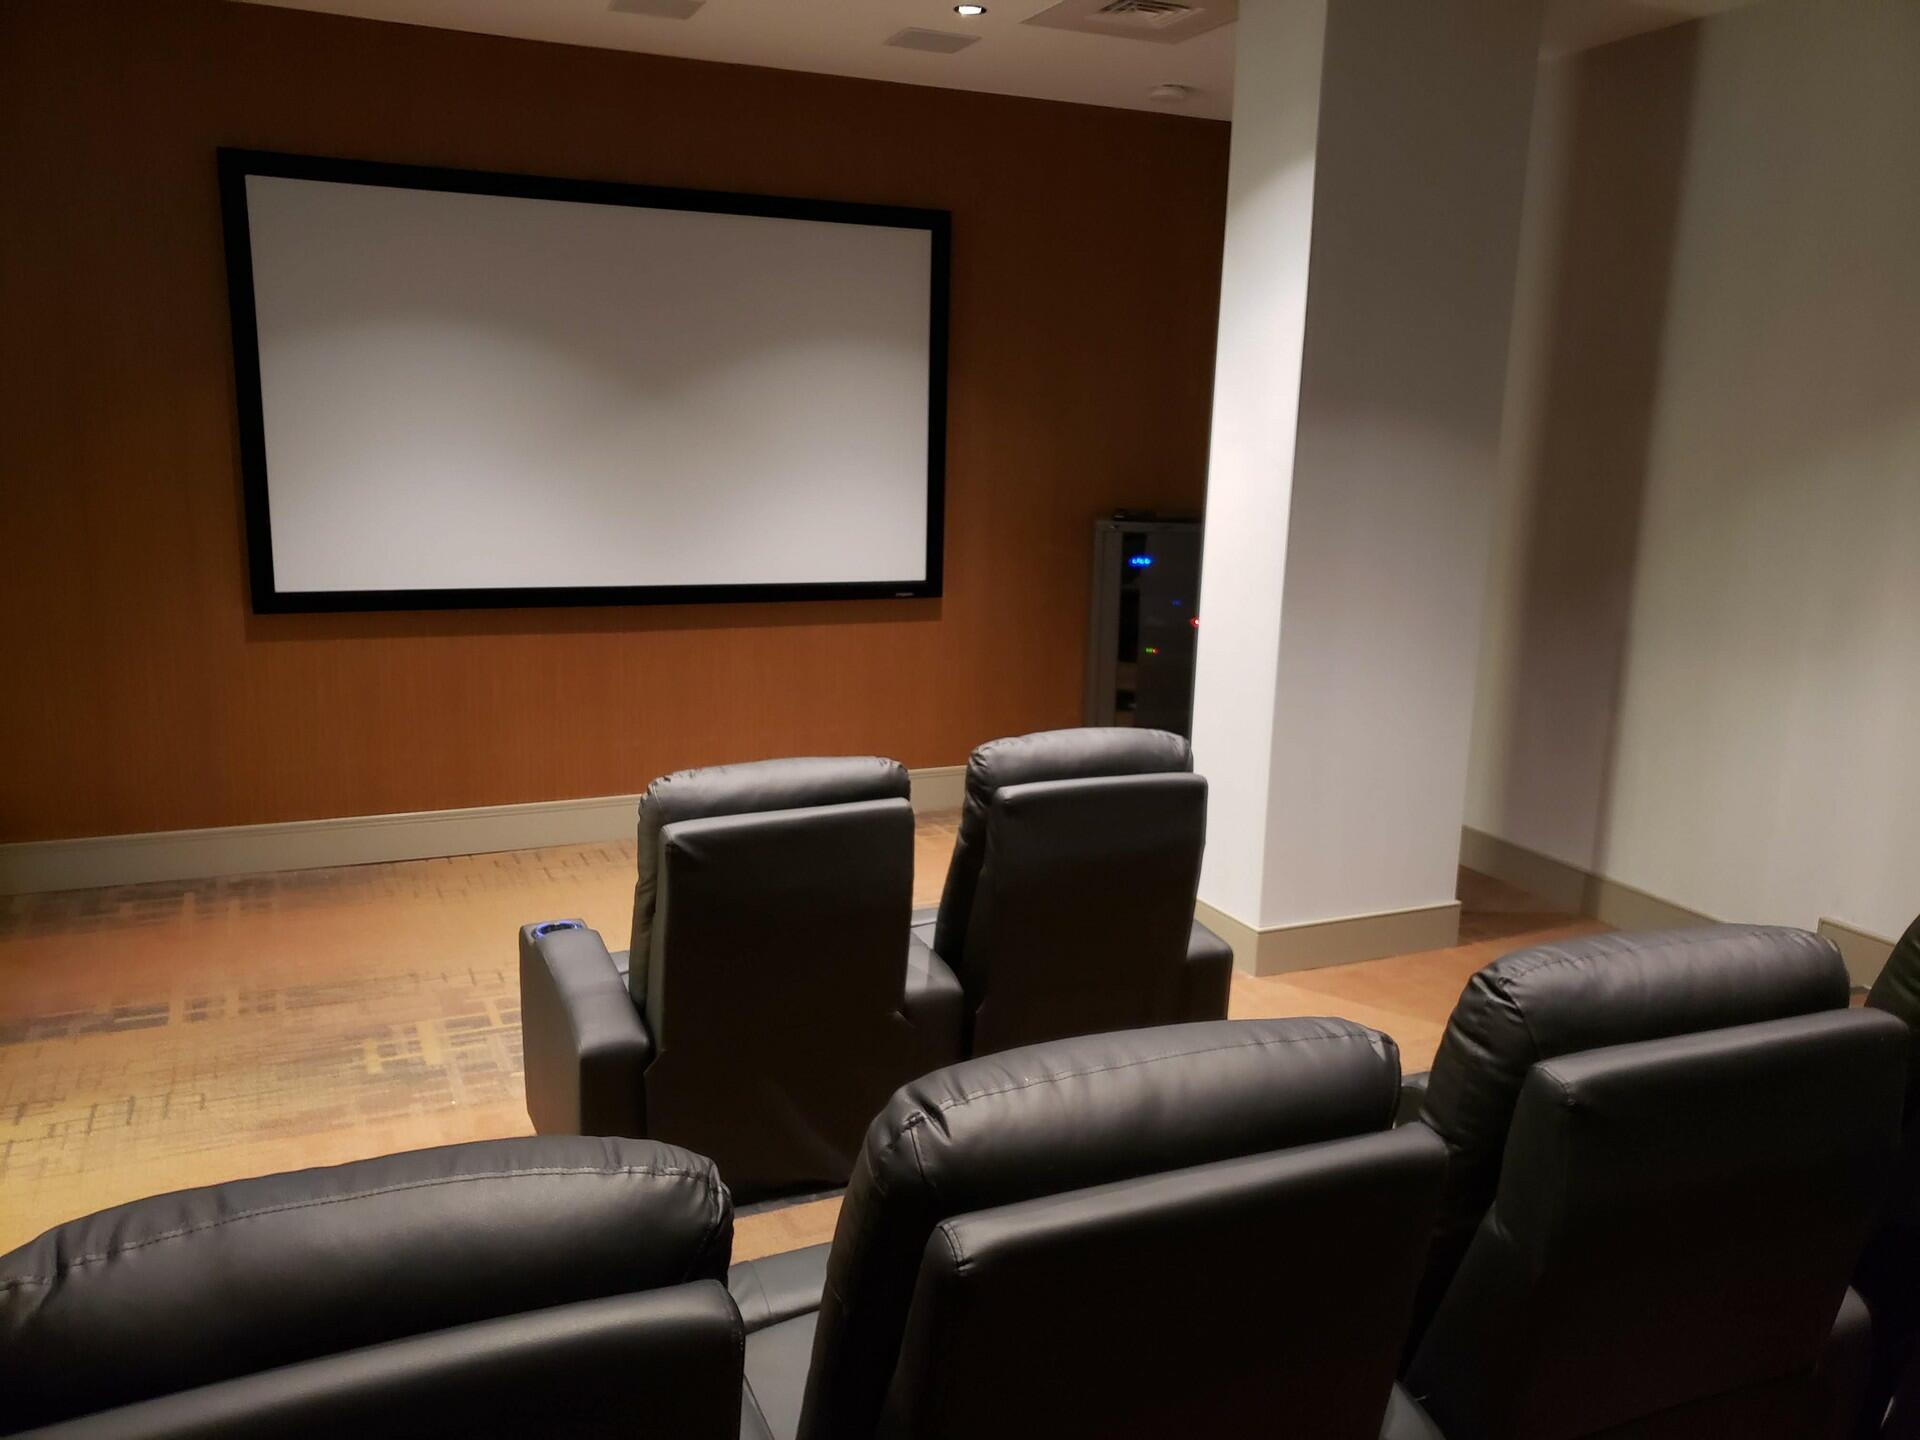 theater room with large projector screen